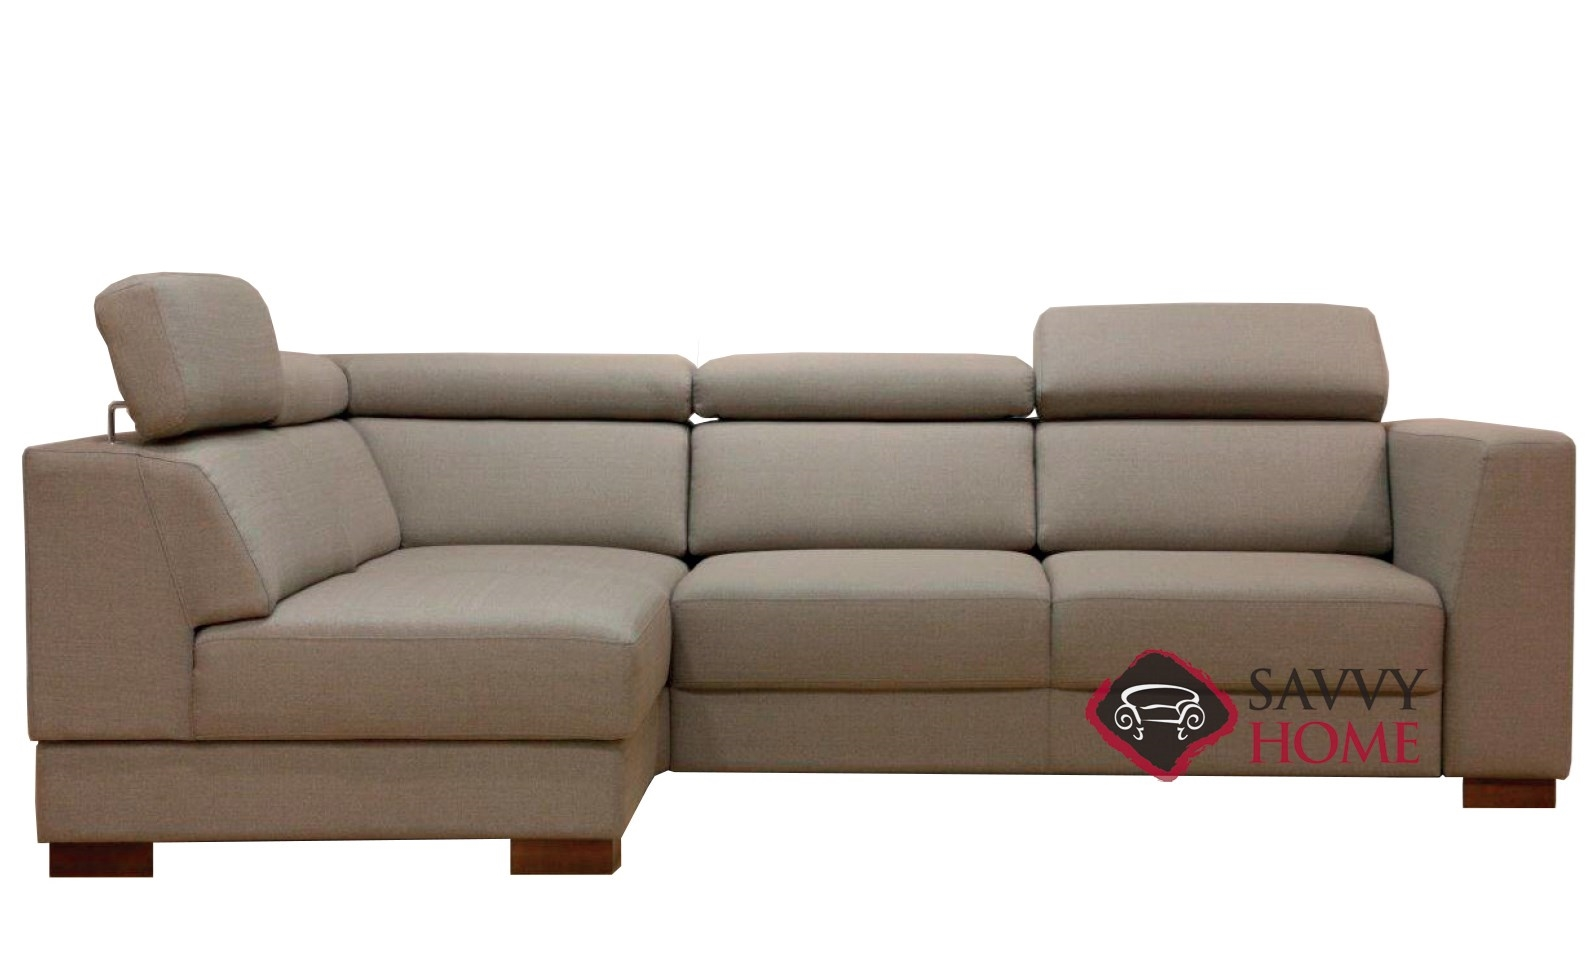 Chaise Sectional Sleeper Sofa | Small Chaise Sofa Bed Chaise Small ...